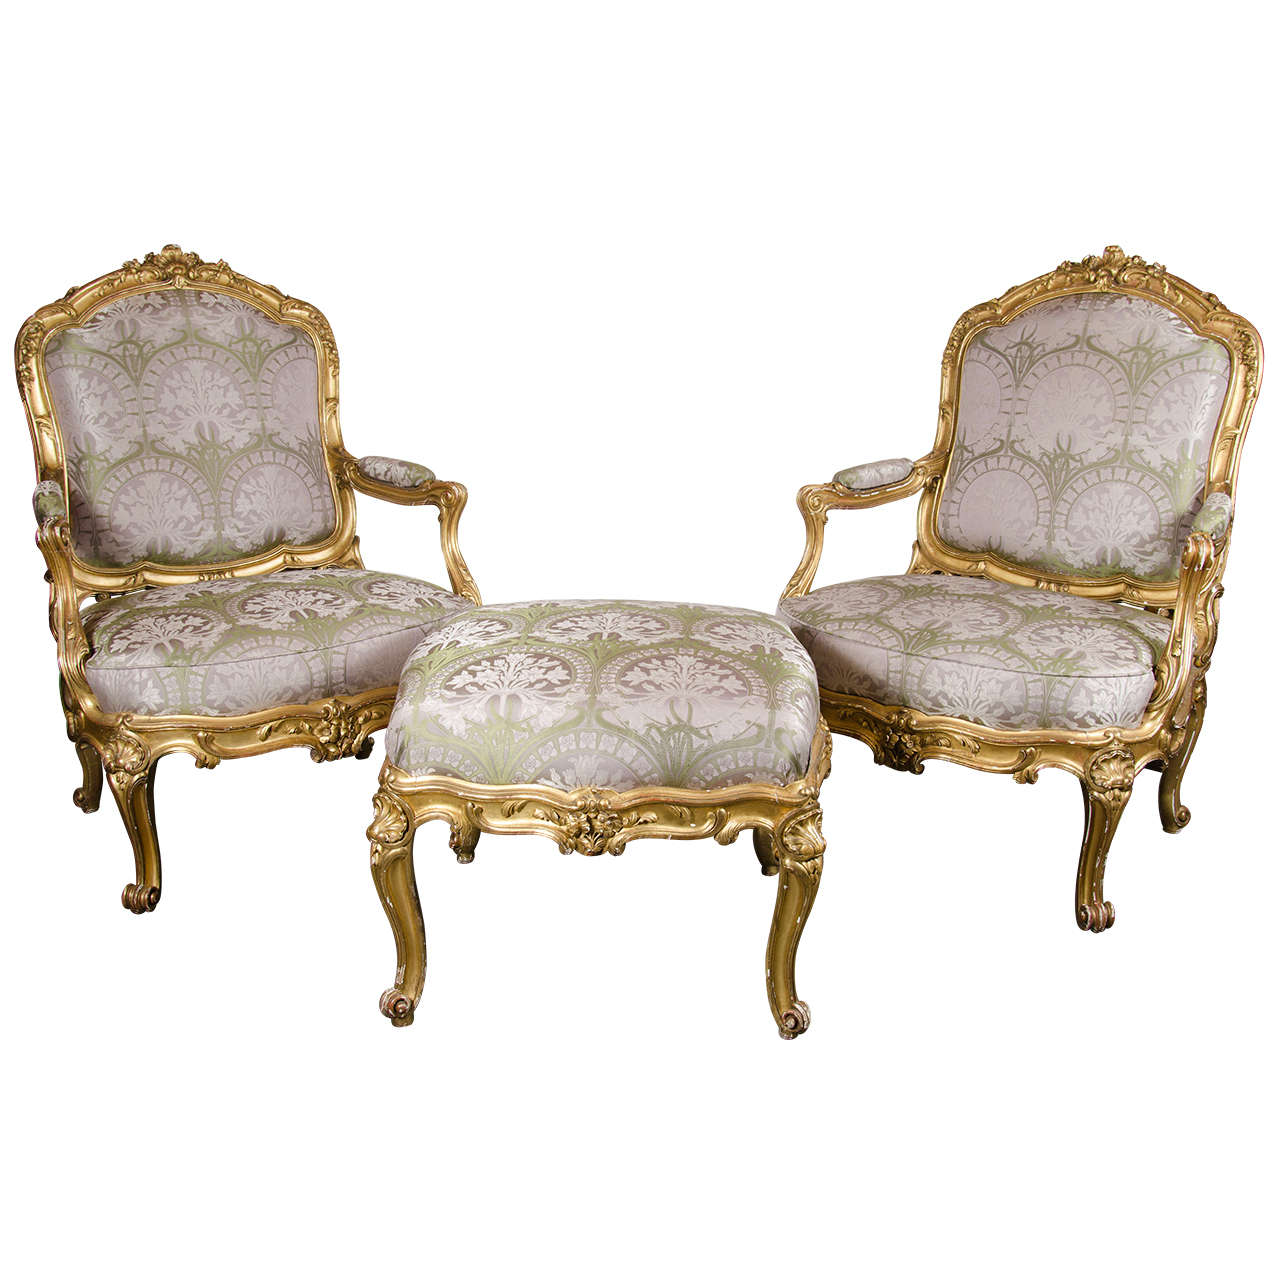 Pair Of French Bergere Chairs And Ottoman In Gilded Wood